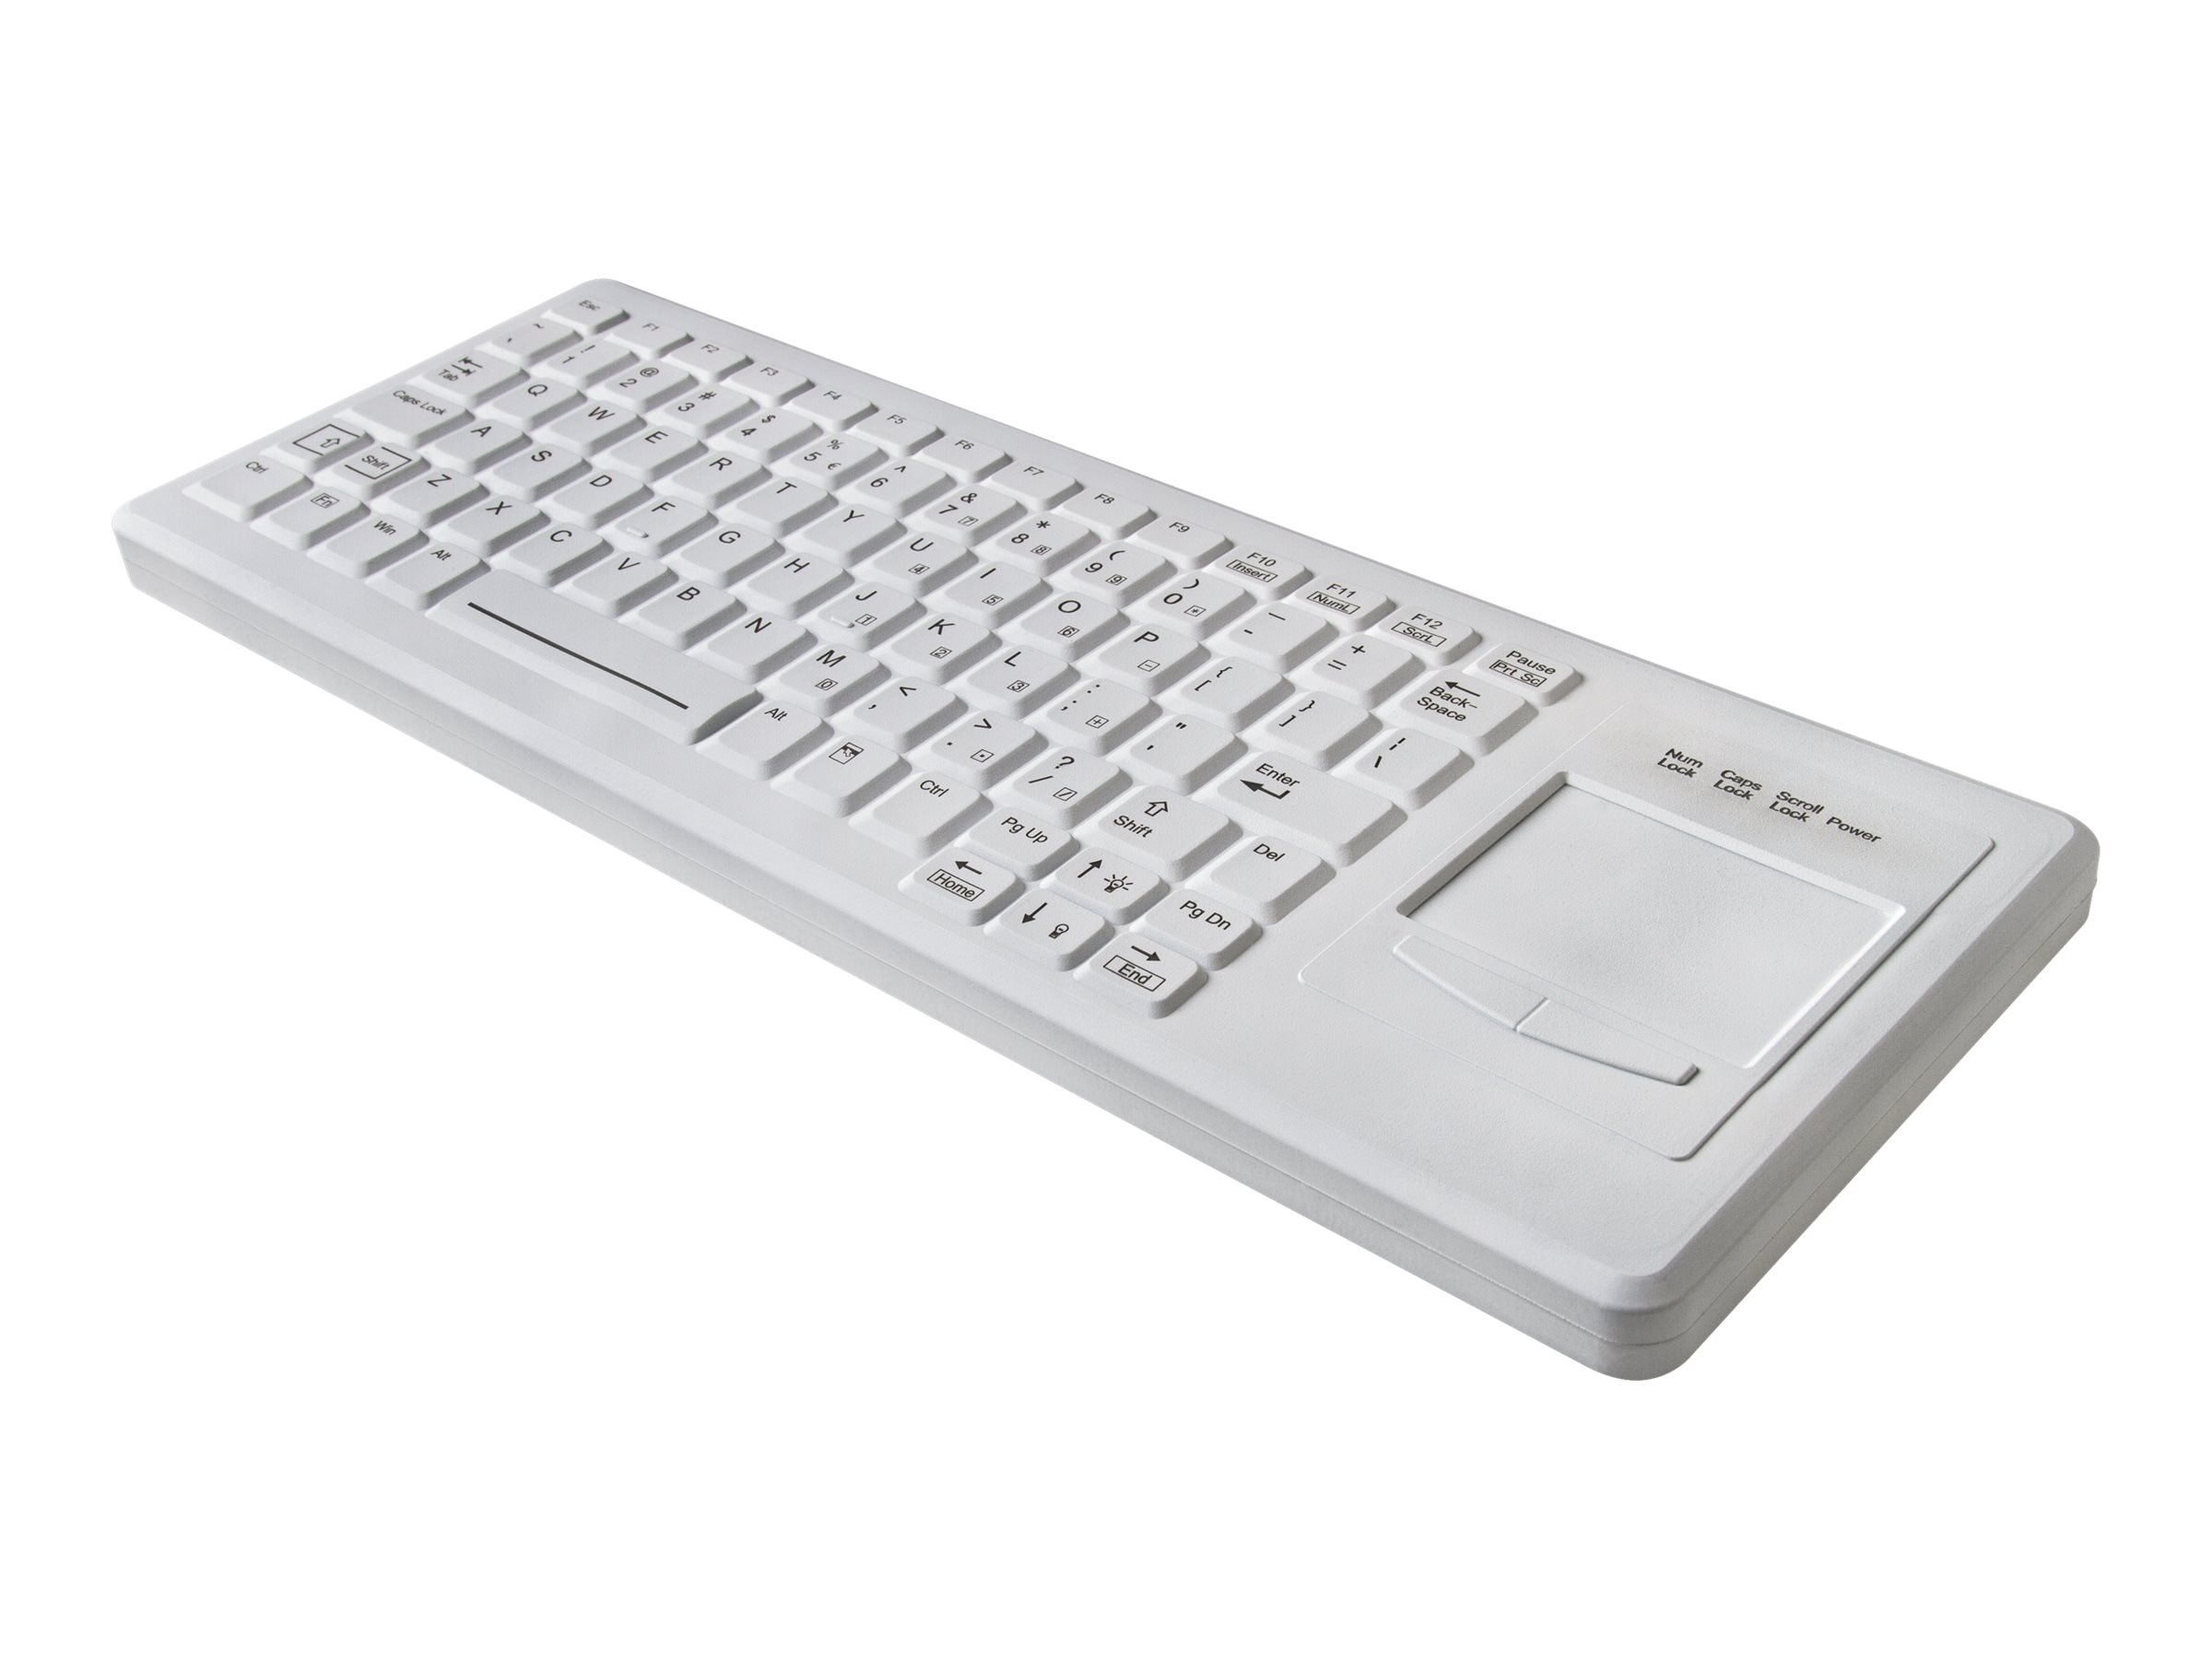 TG3 CK82S Medical Keyboard Right Touchpad 82 Keys Sealed IP68, USB, Black, White Backlighting, KBA-CK82S-BRUW-US